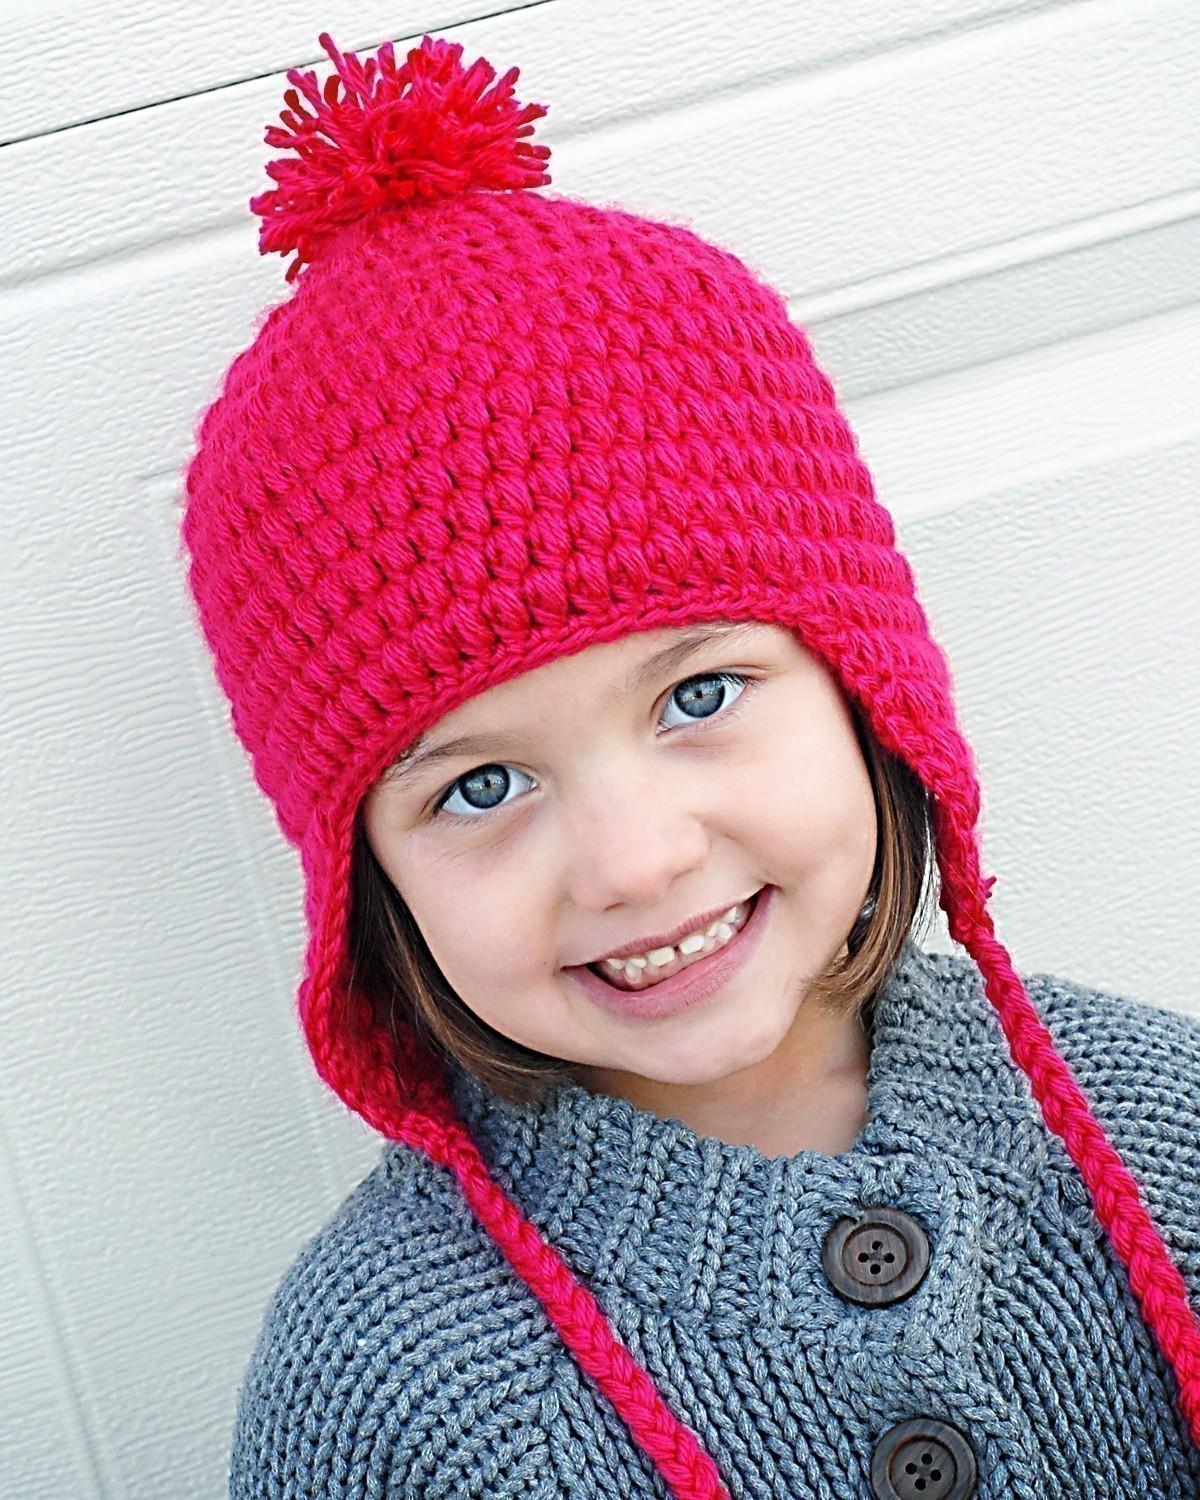 Crochet Patterns Baby Hats With Ears Dancox for